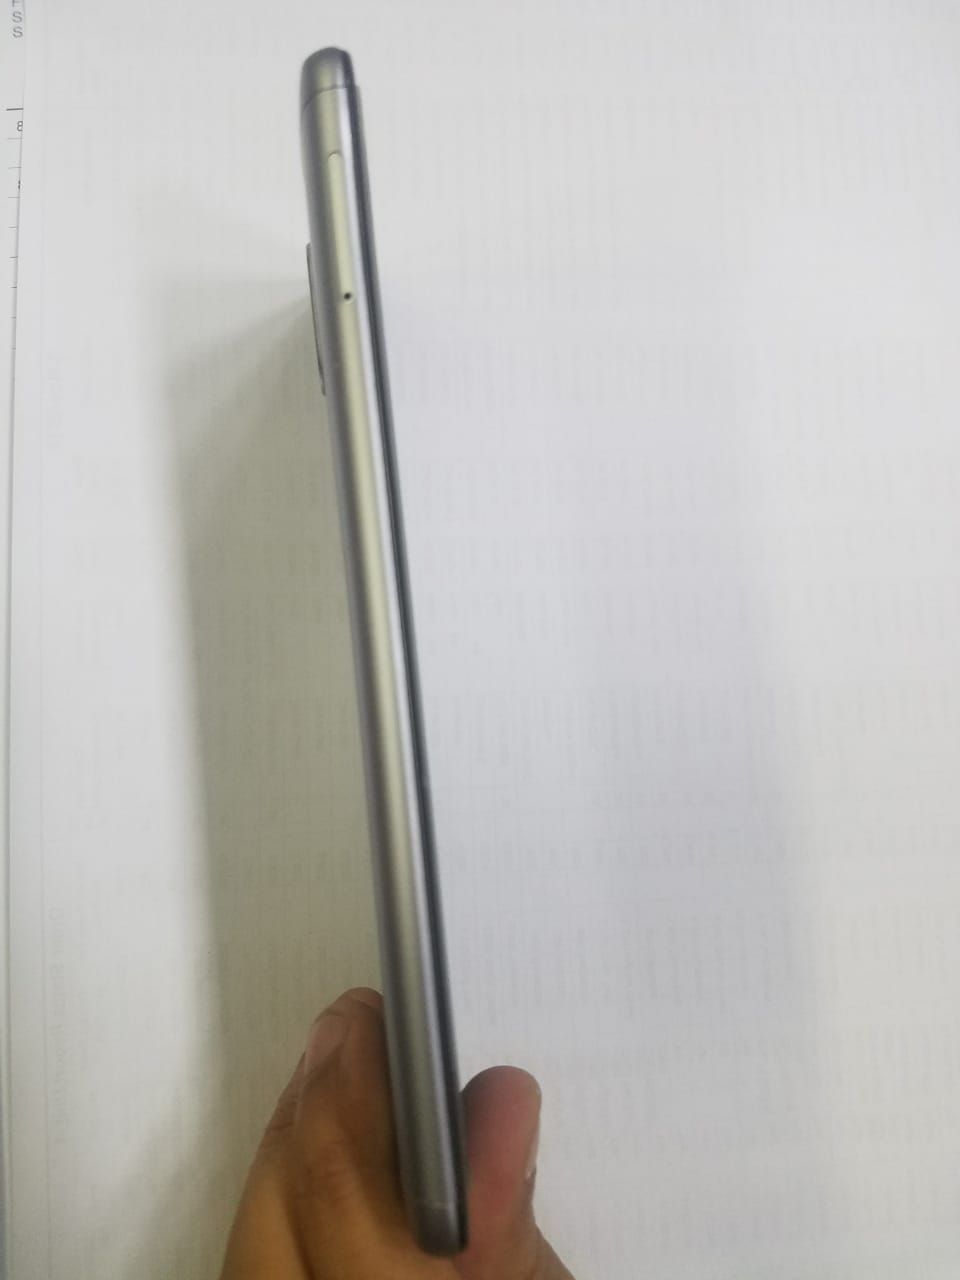 honor 6x gaurnteed non repaired condition 10/10 - photo 4